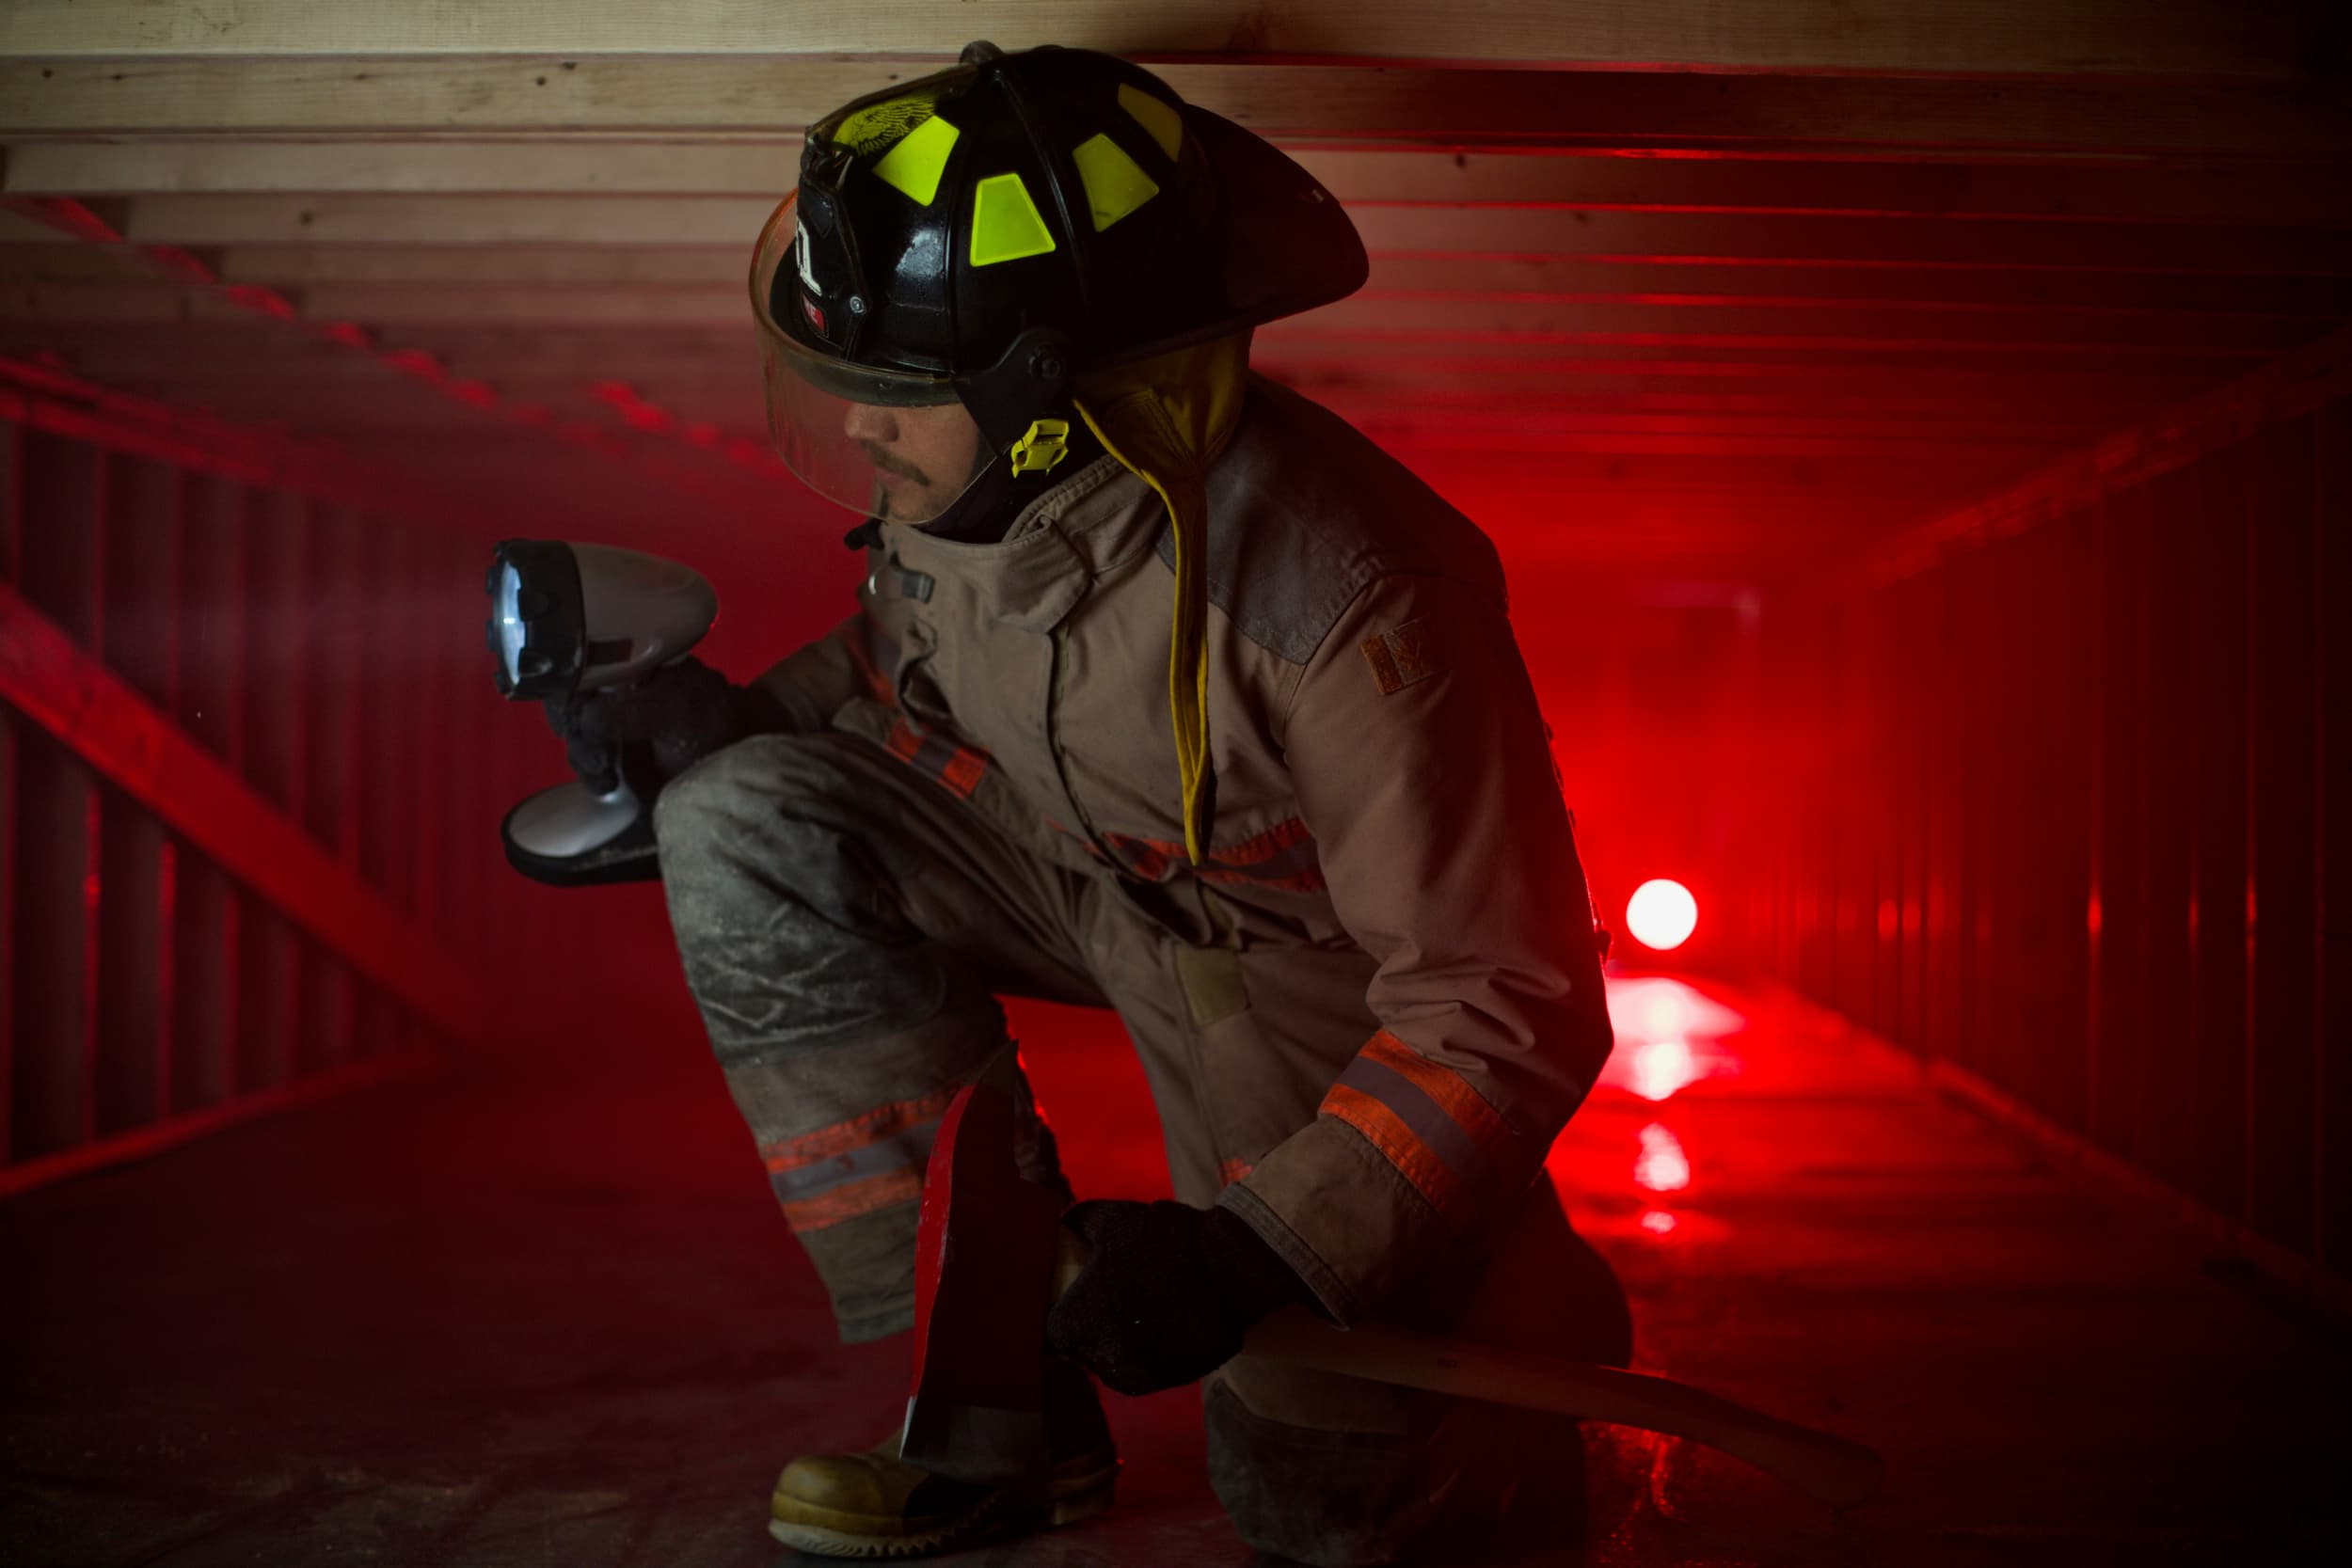 Compliance Training Online Firefighter Confined Space Entry & Rescue